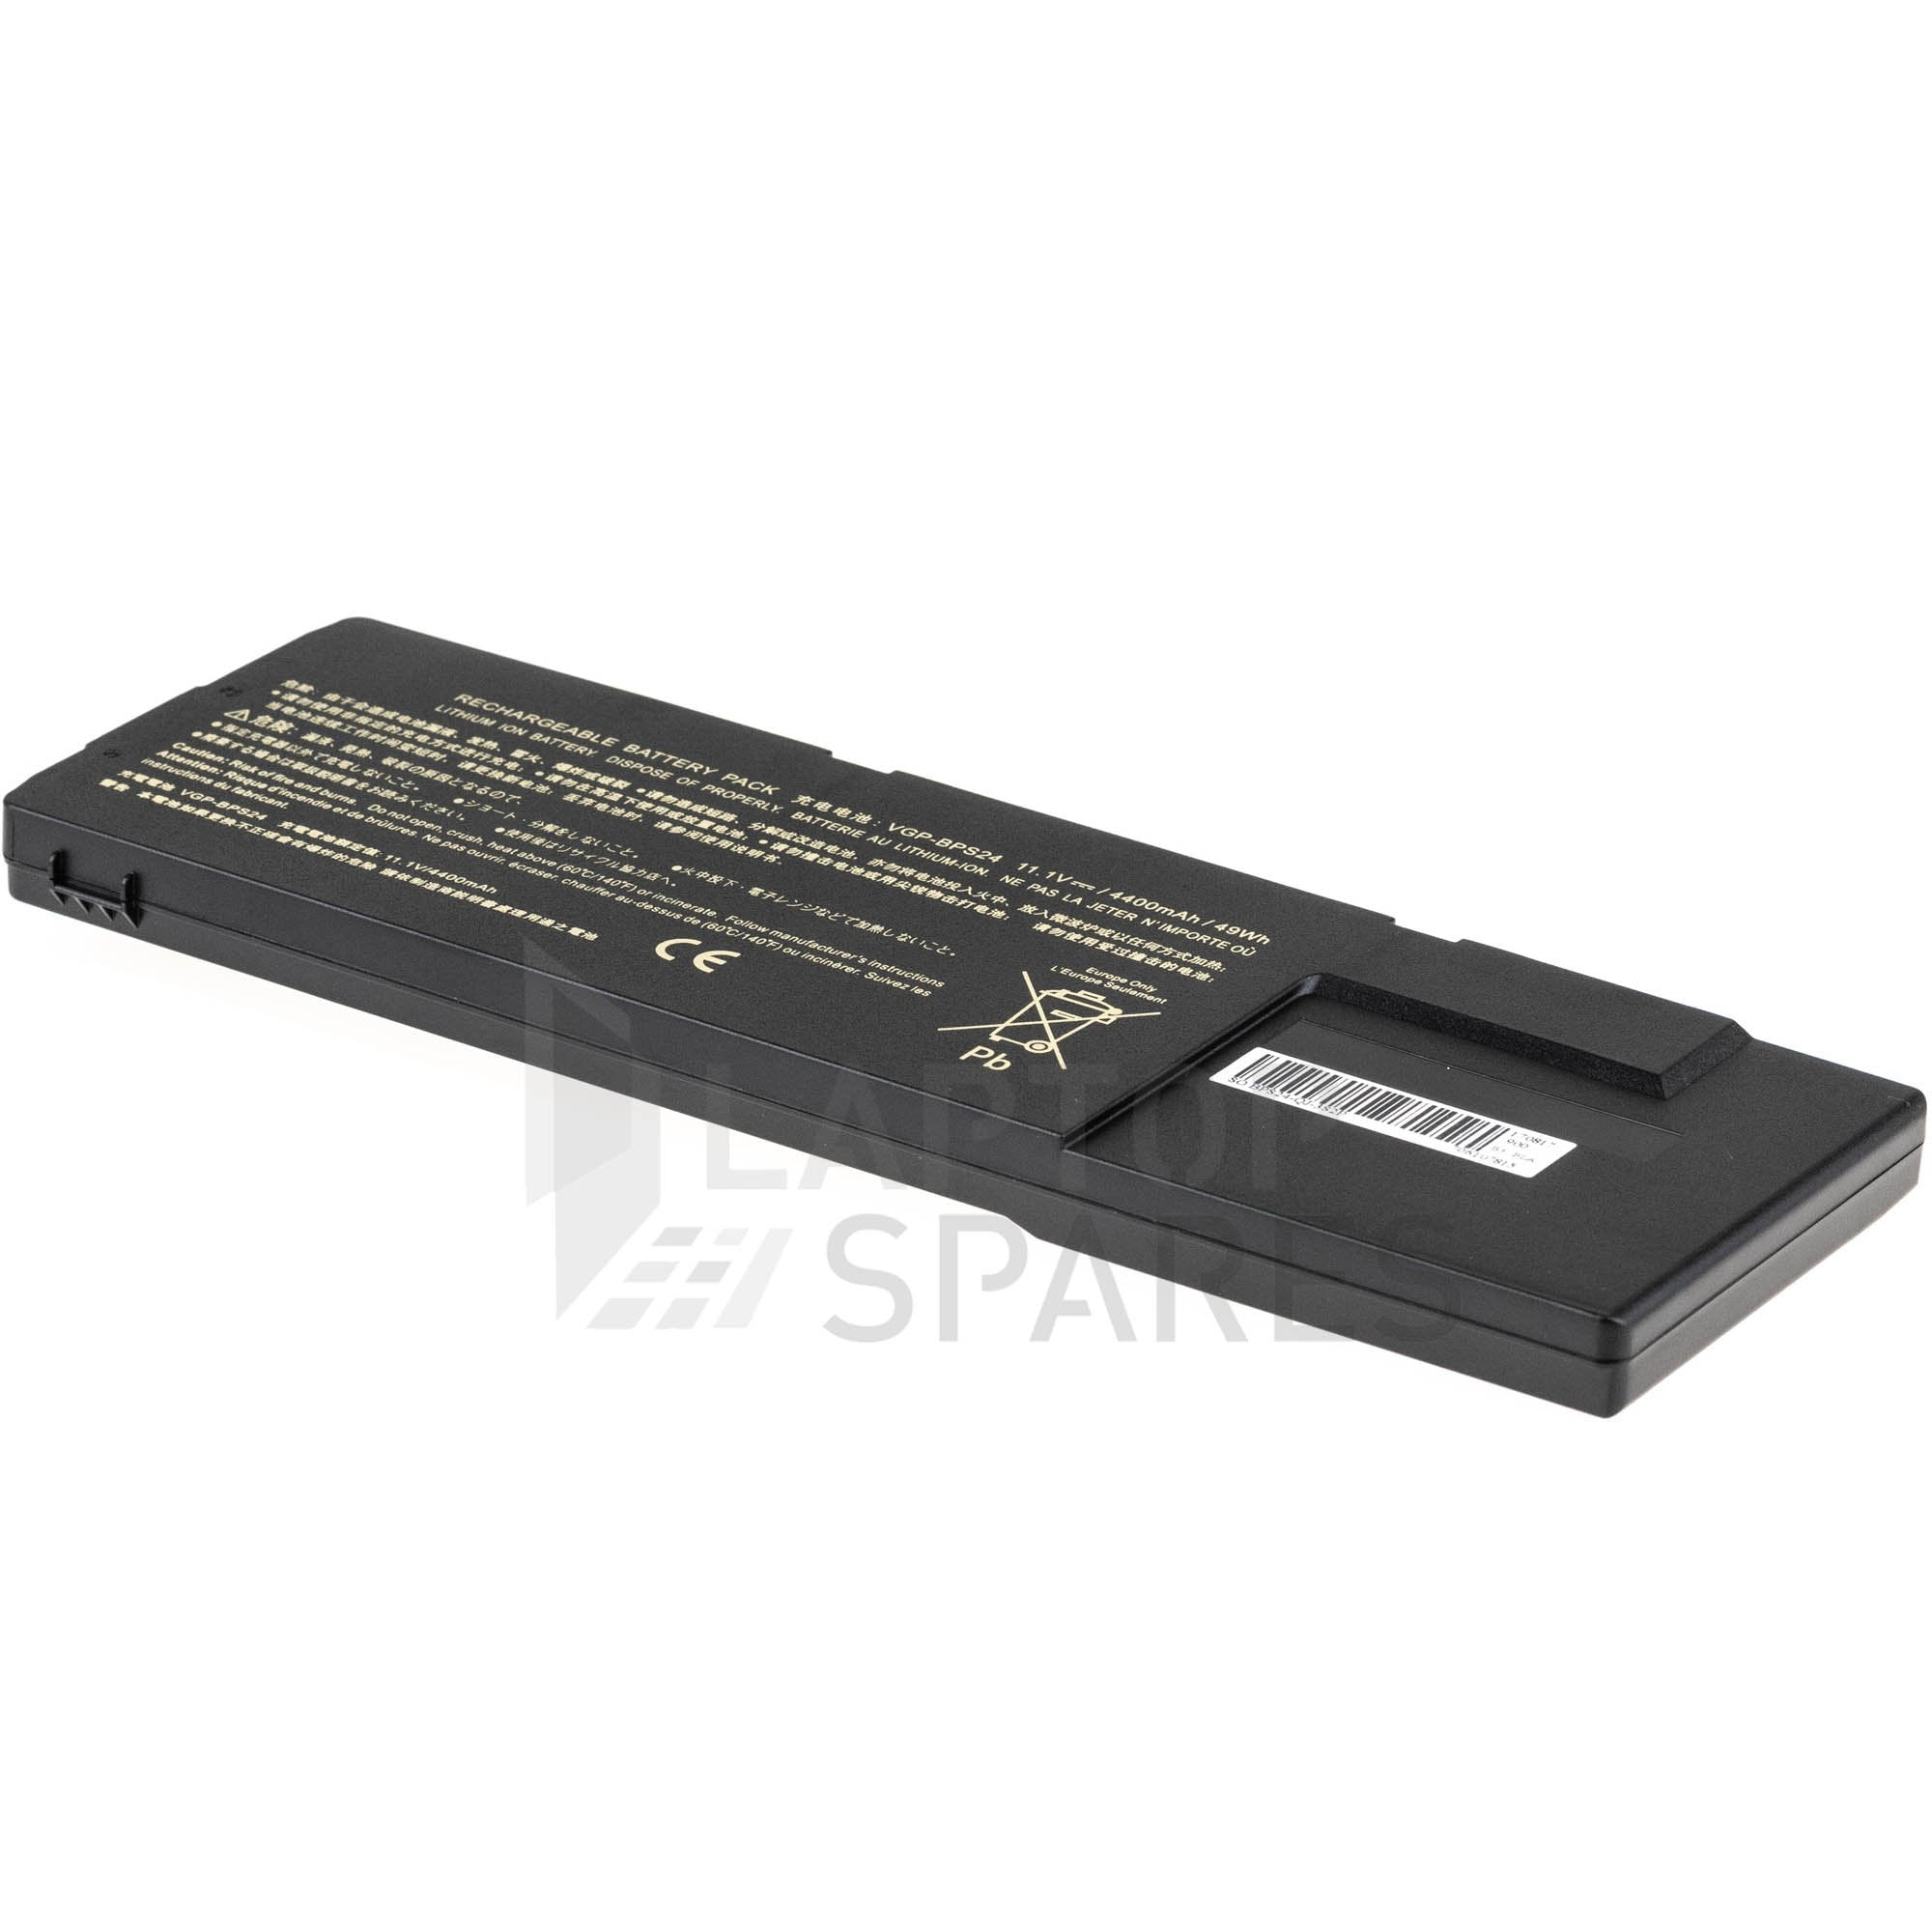 Sony Vaio VPC SB18GA/B SB18GG 4400mAh 6 Cell Battery